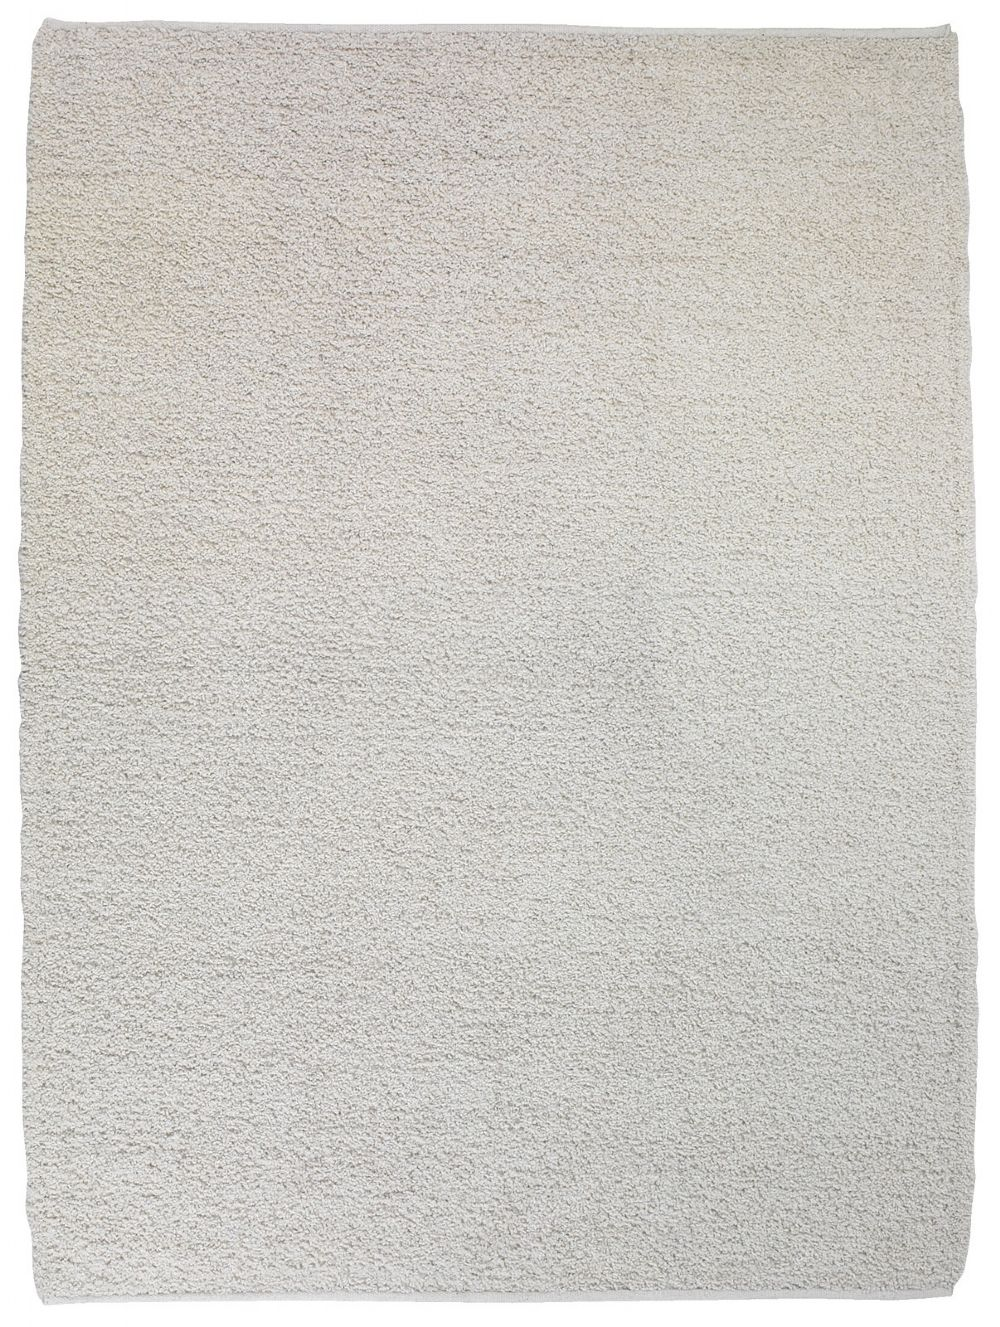 ma trading chenille contemporary area rug collection